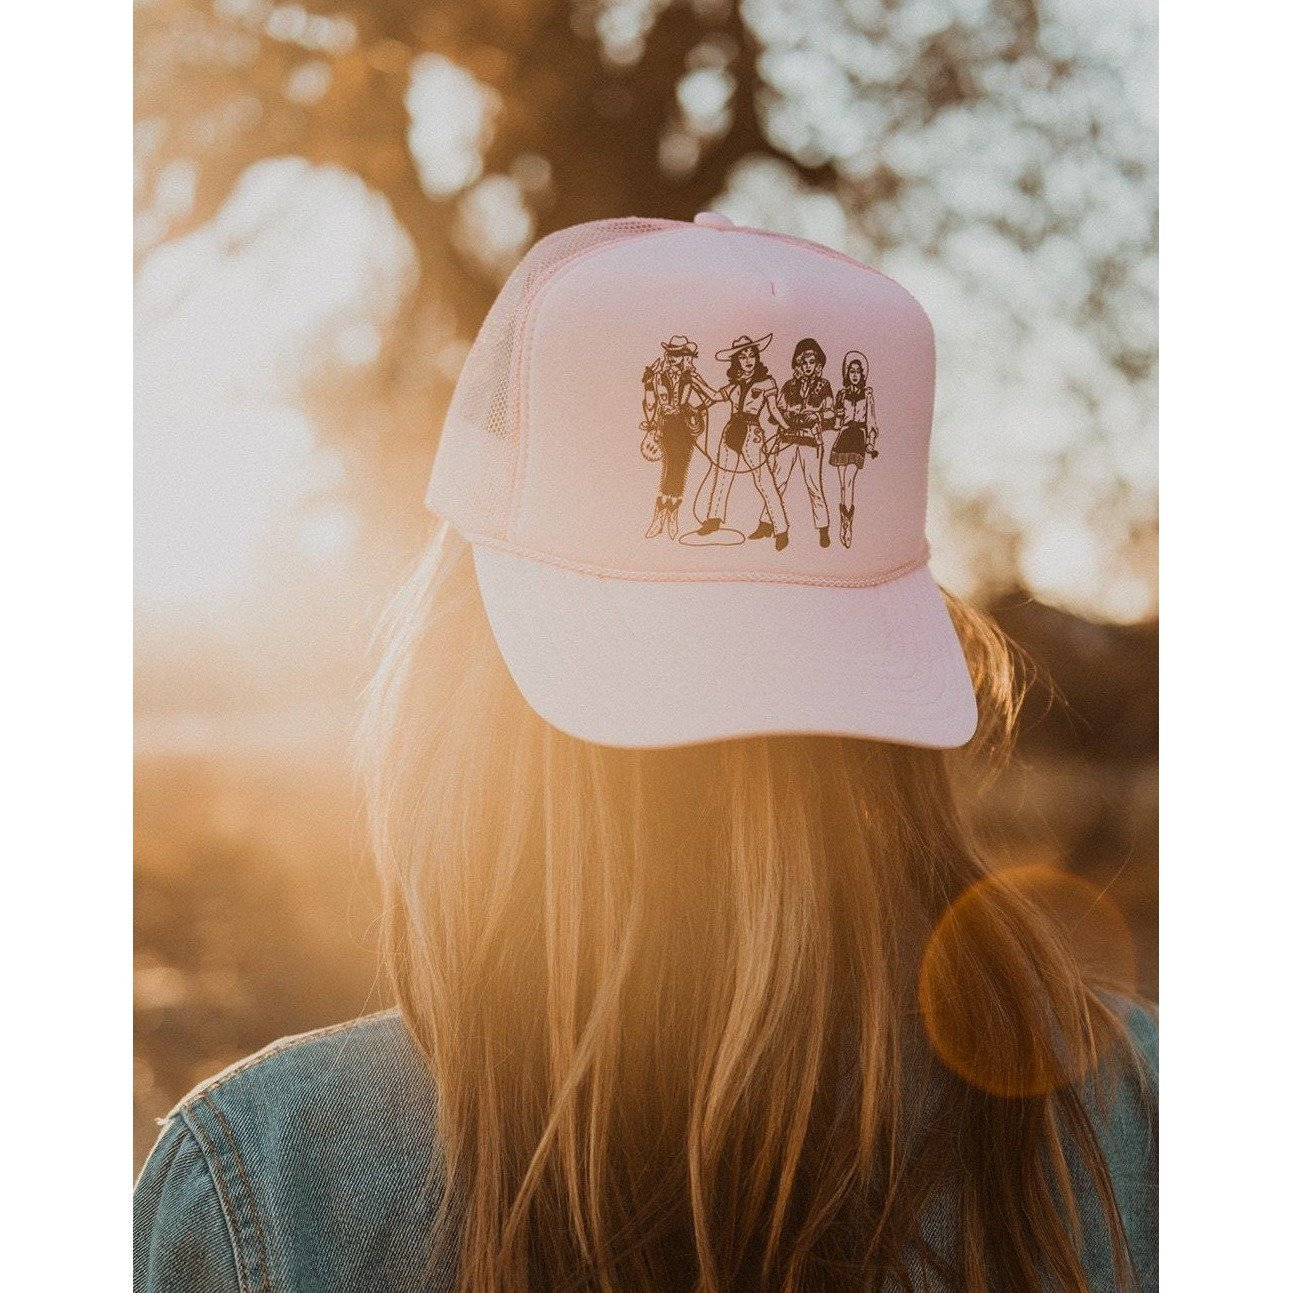 Lady Gang Trucker Hat Pink - Intrigue Ink Visit Bozeman, Unique Shopping Boutique in Montana, Work from Home Clothes for Women